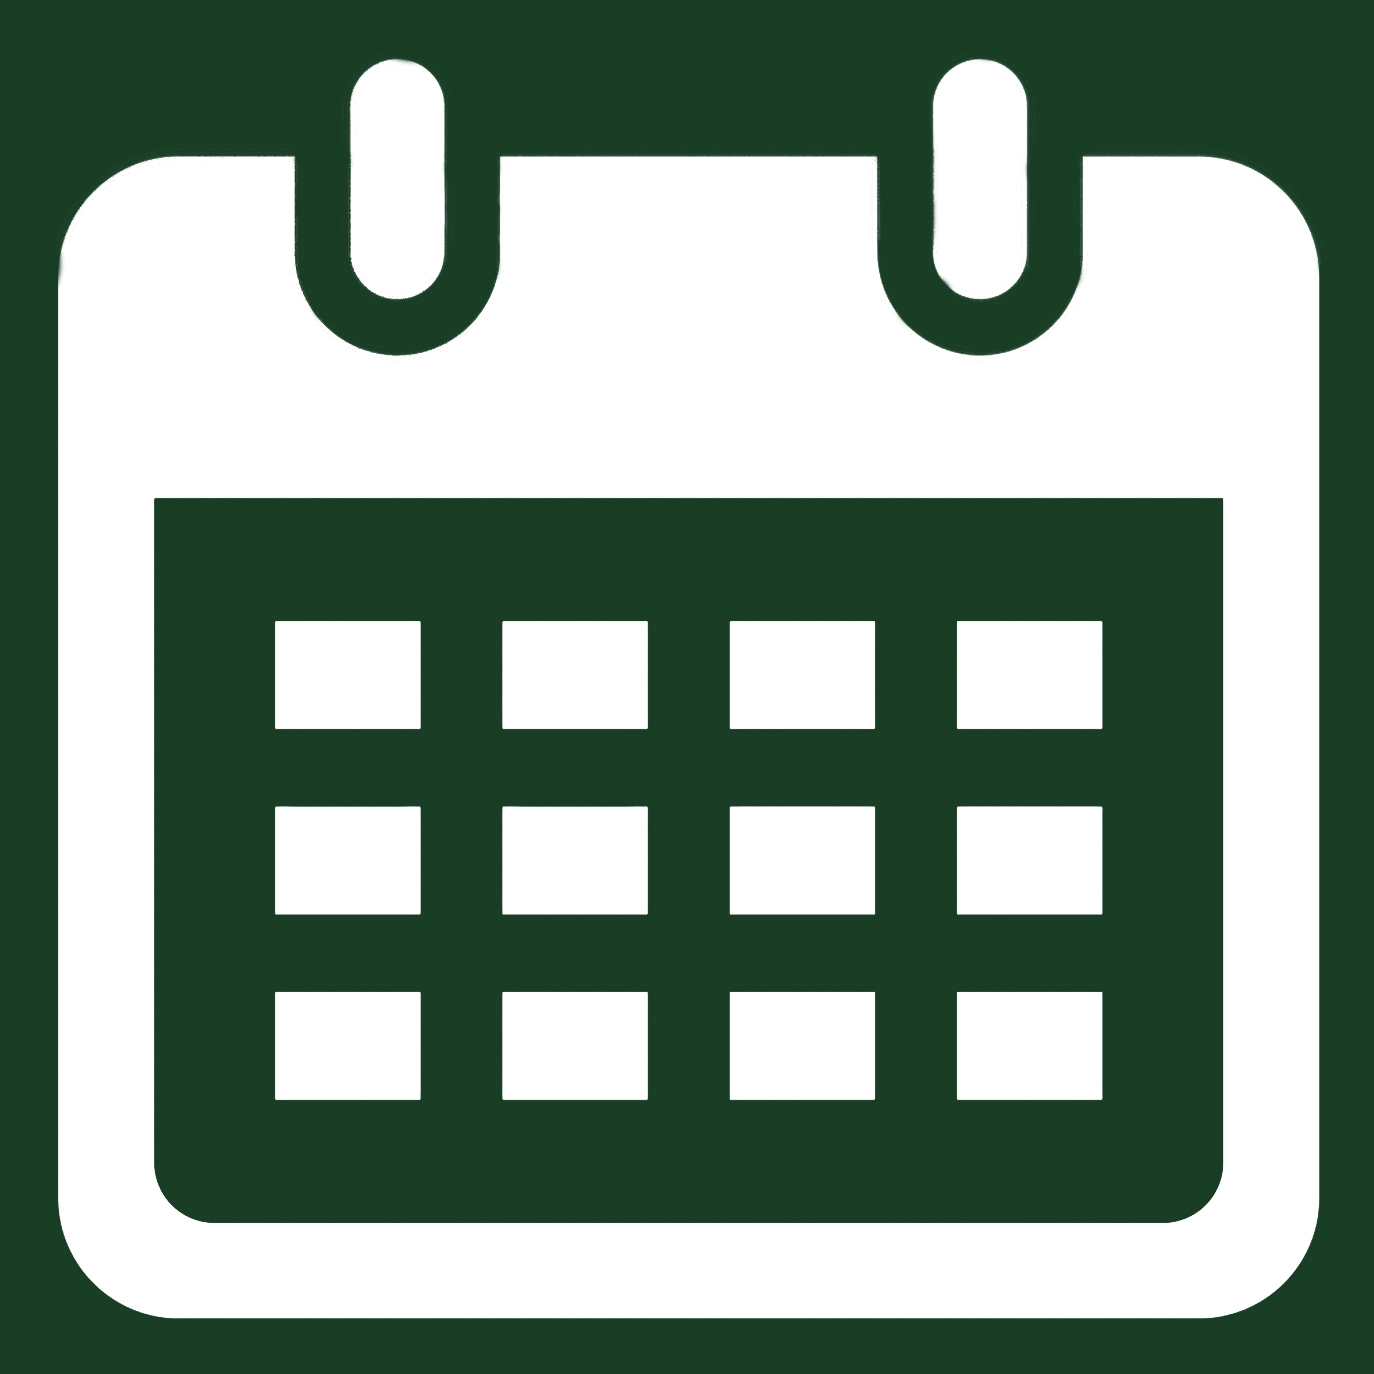 Event Calendar - graphic of a white calendar on a green background